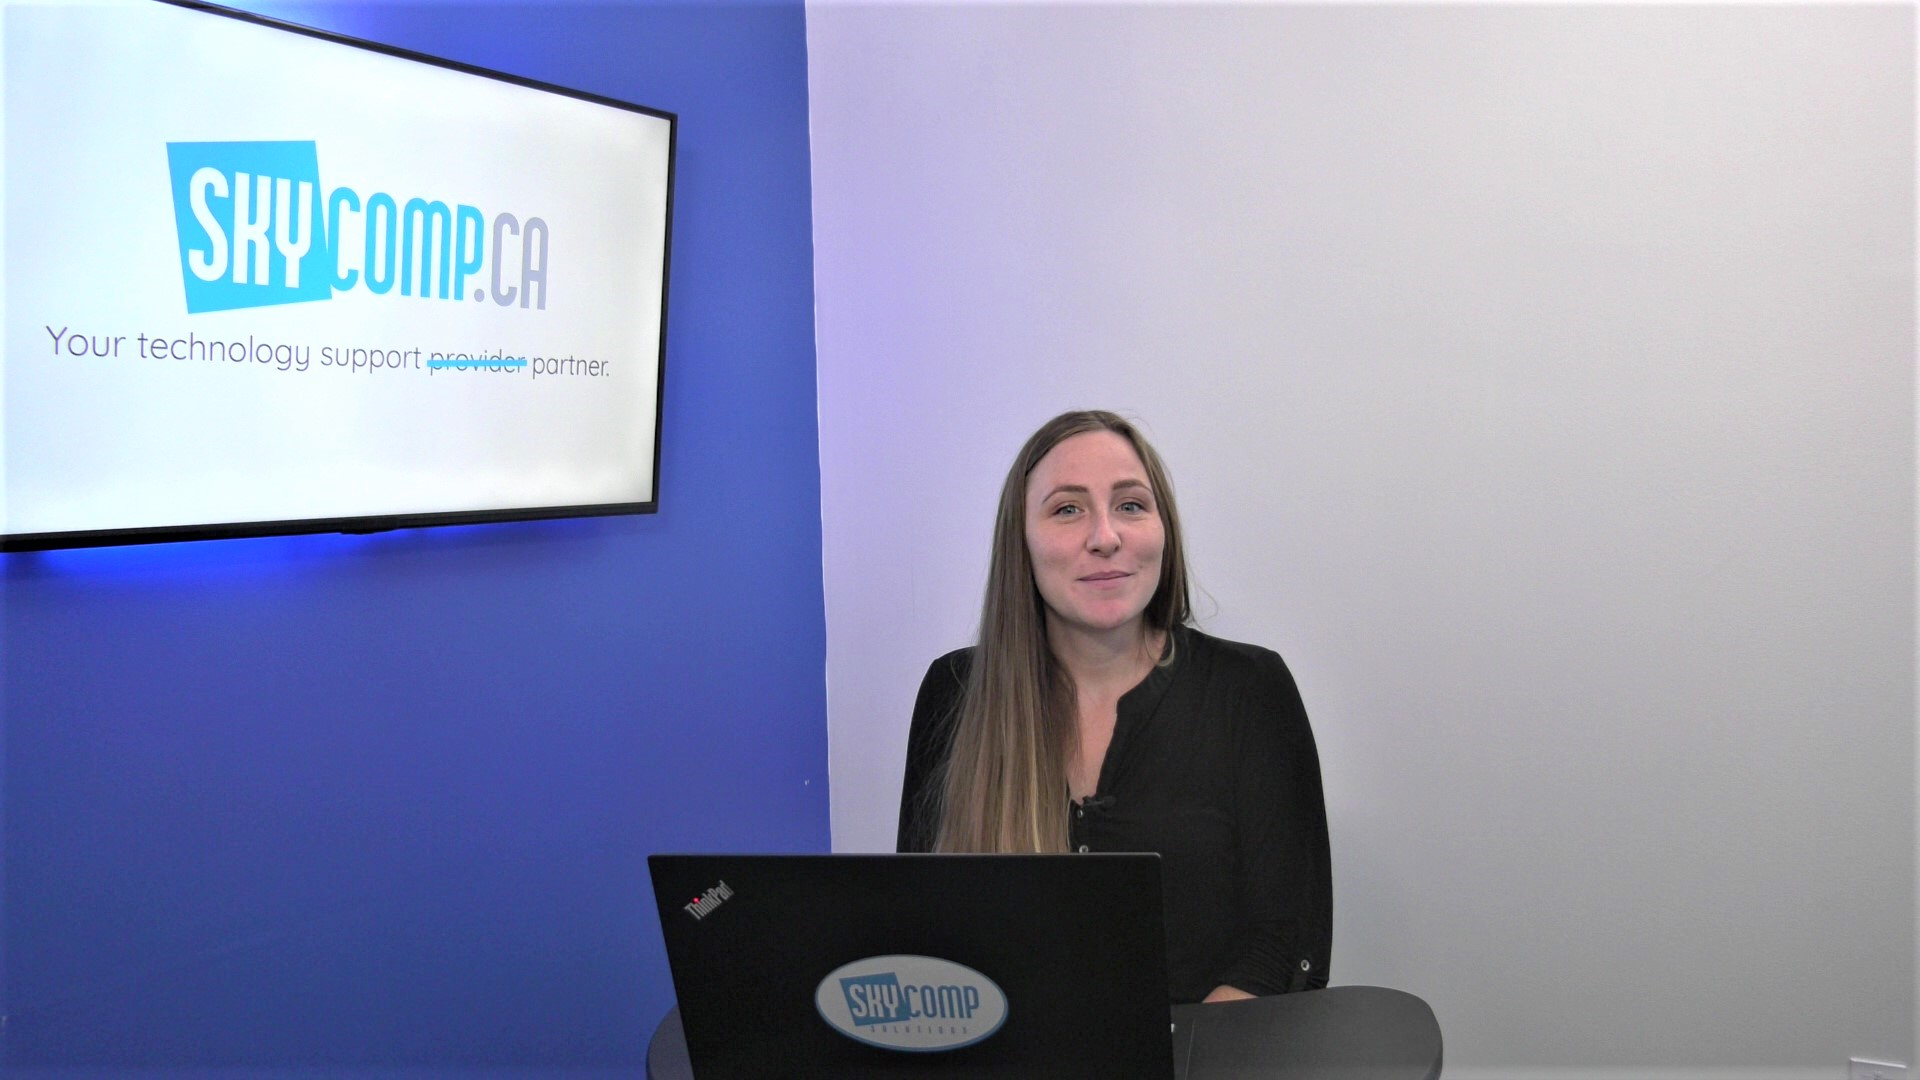 April at Skycomp talking about International Women's Day